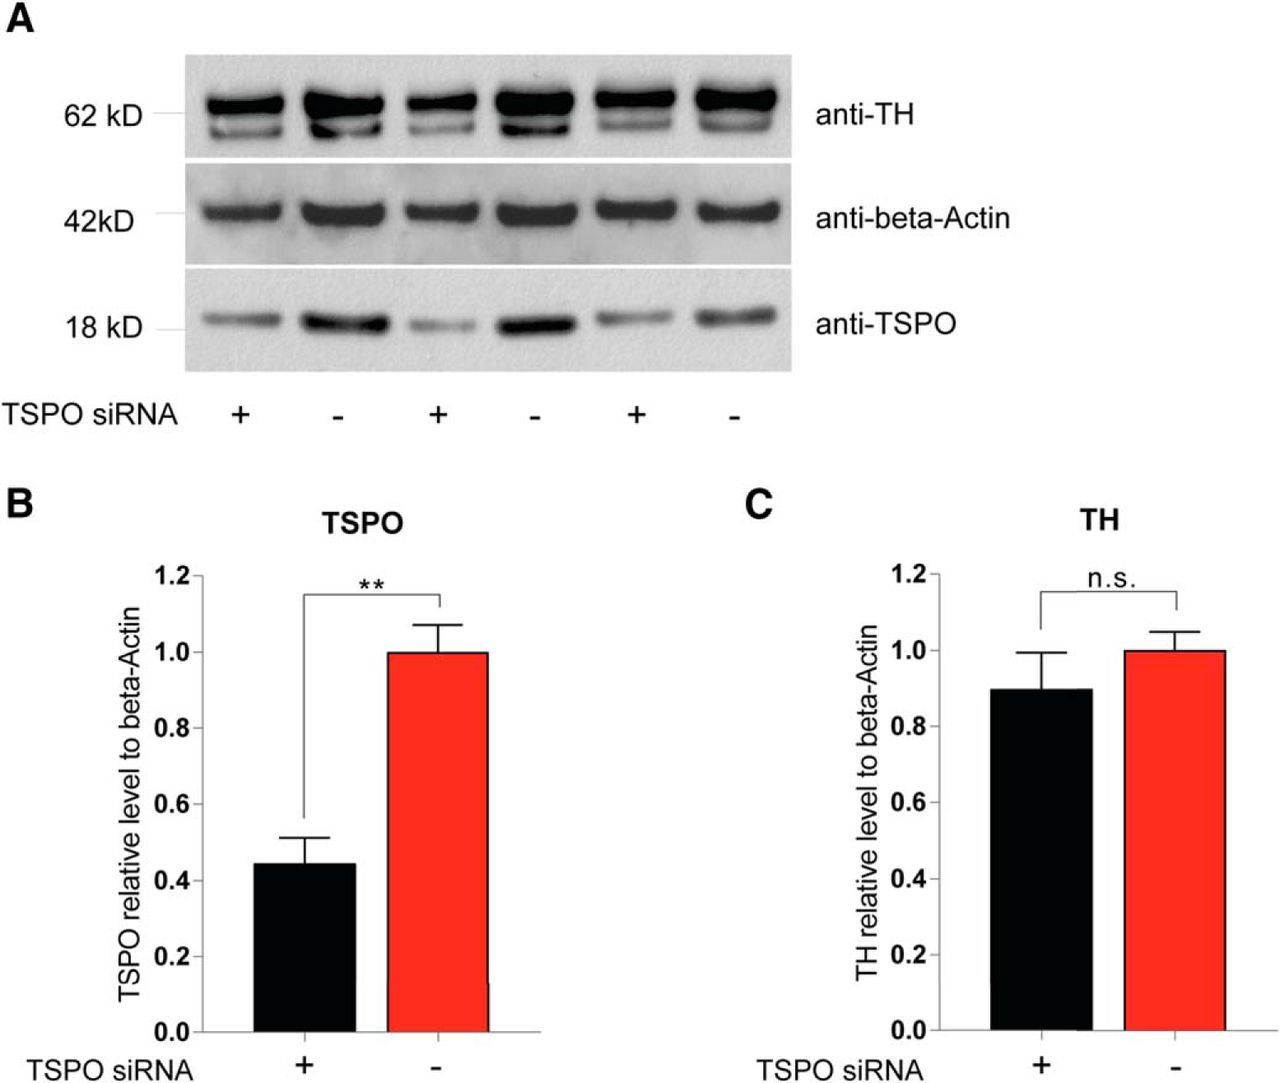 Translocator Protein Ligand Protects against